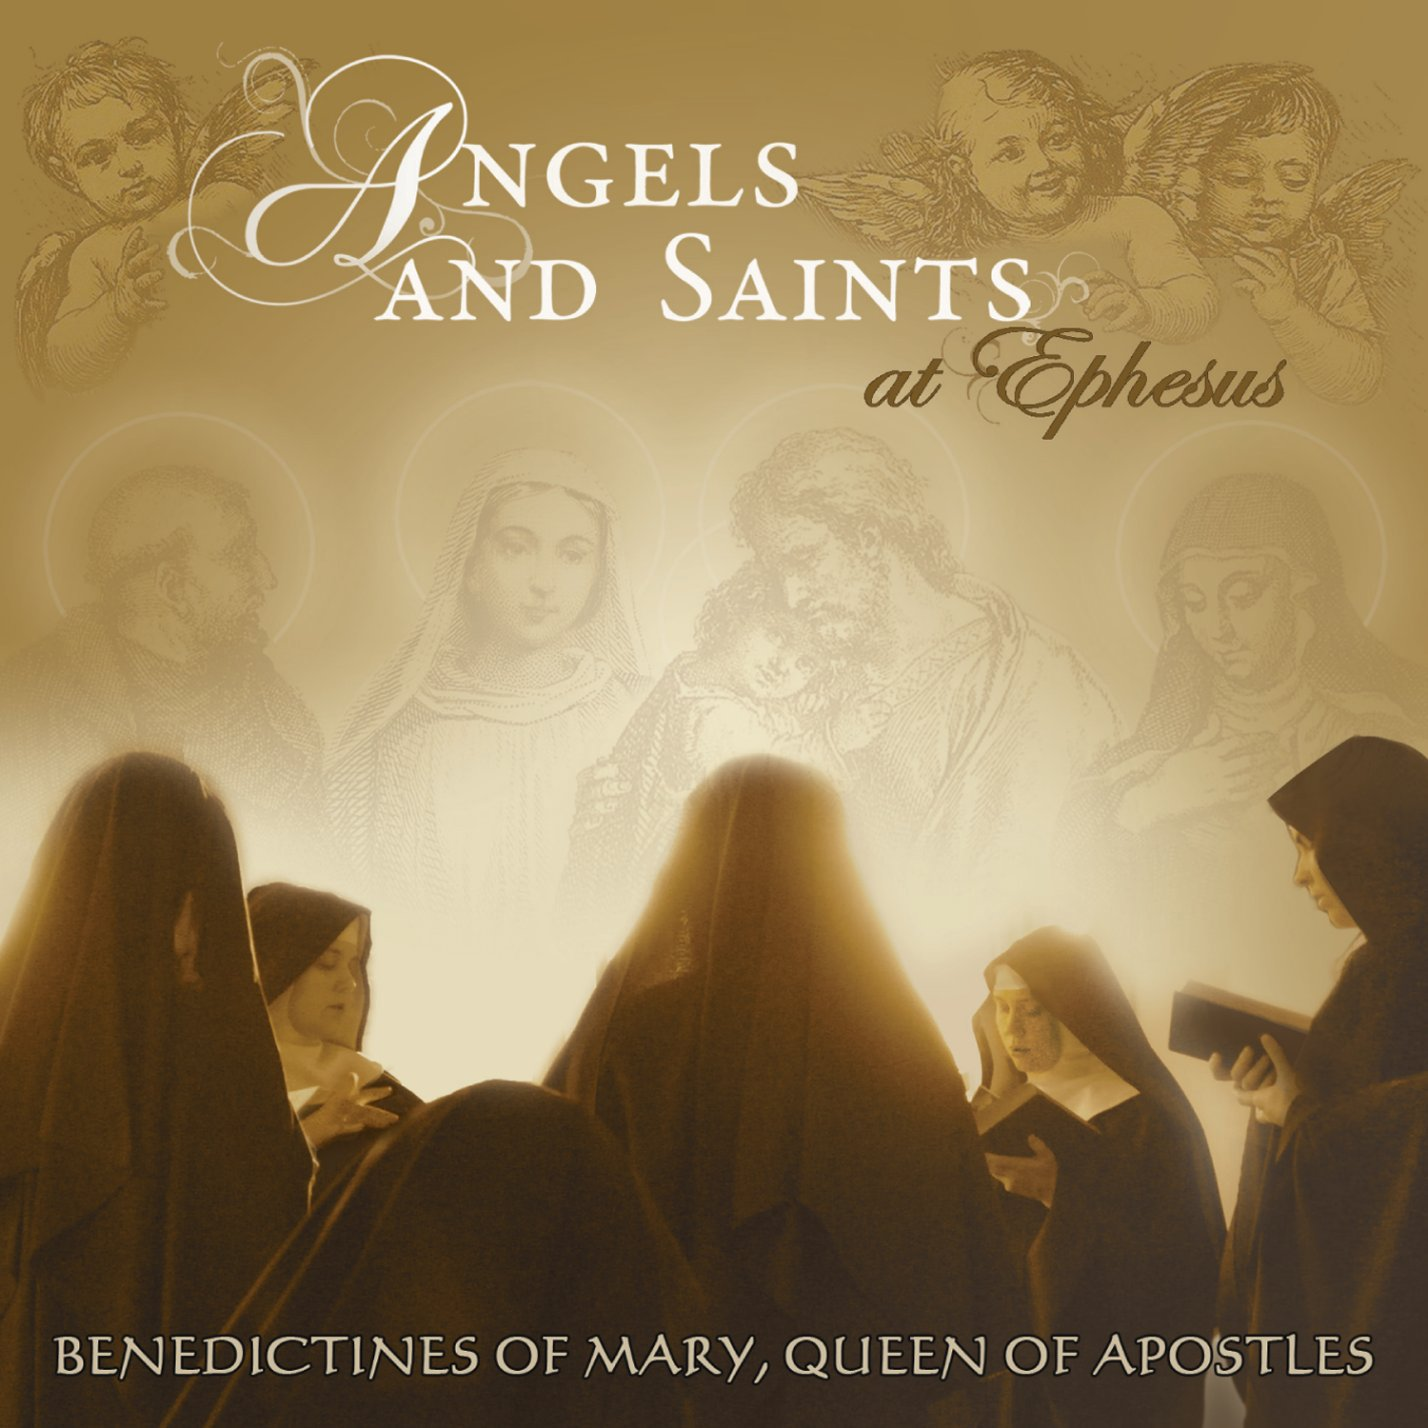 Angels And Saints At Ephesus by Decca